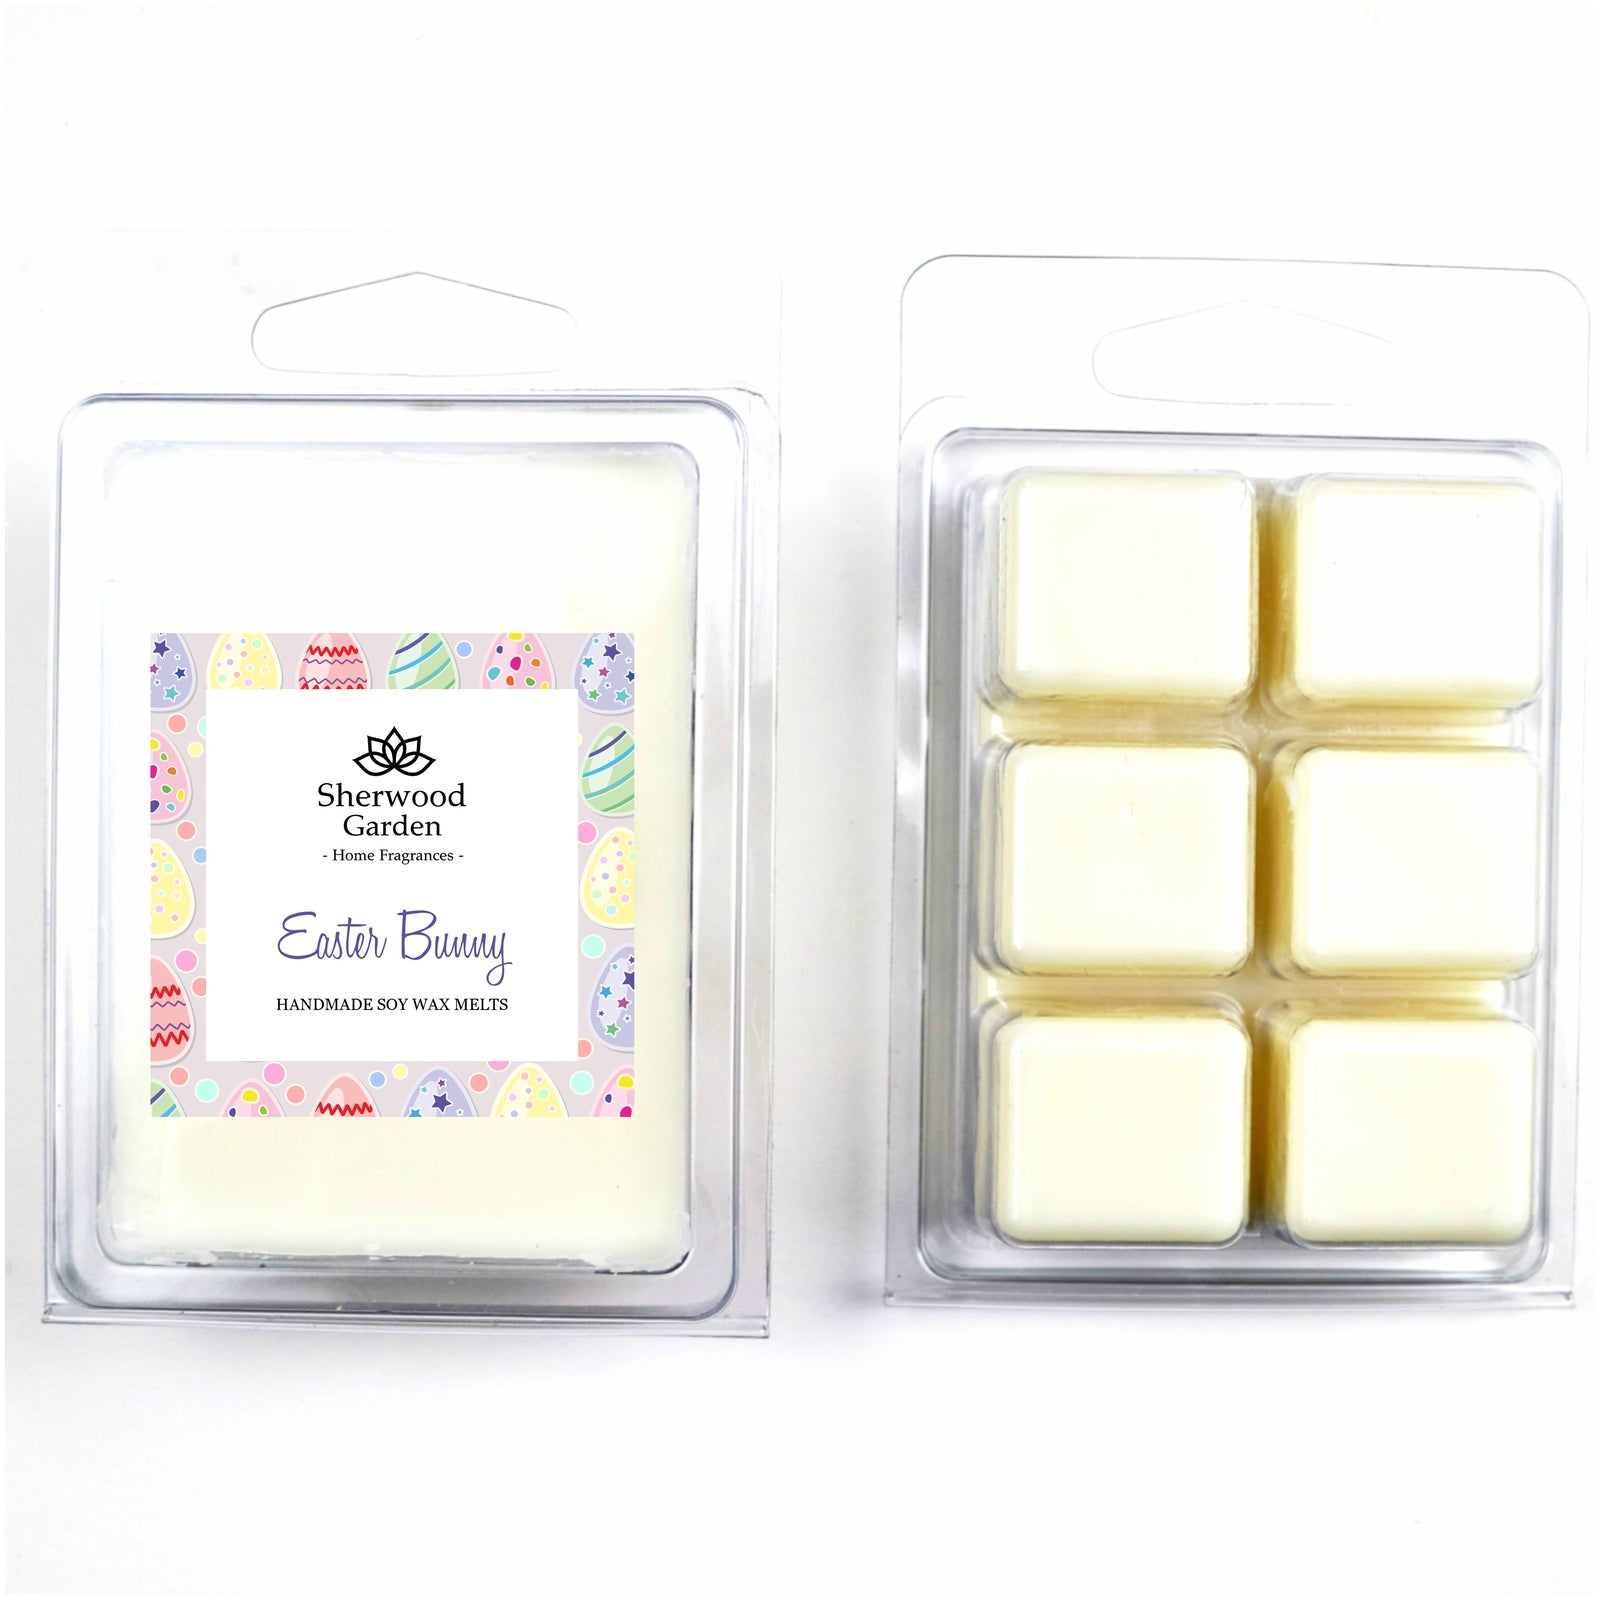 Soy Wax Melts - Easter Bunny (Limited Edition)